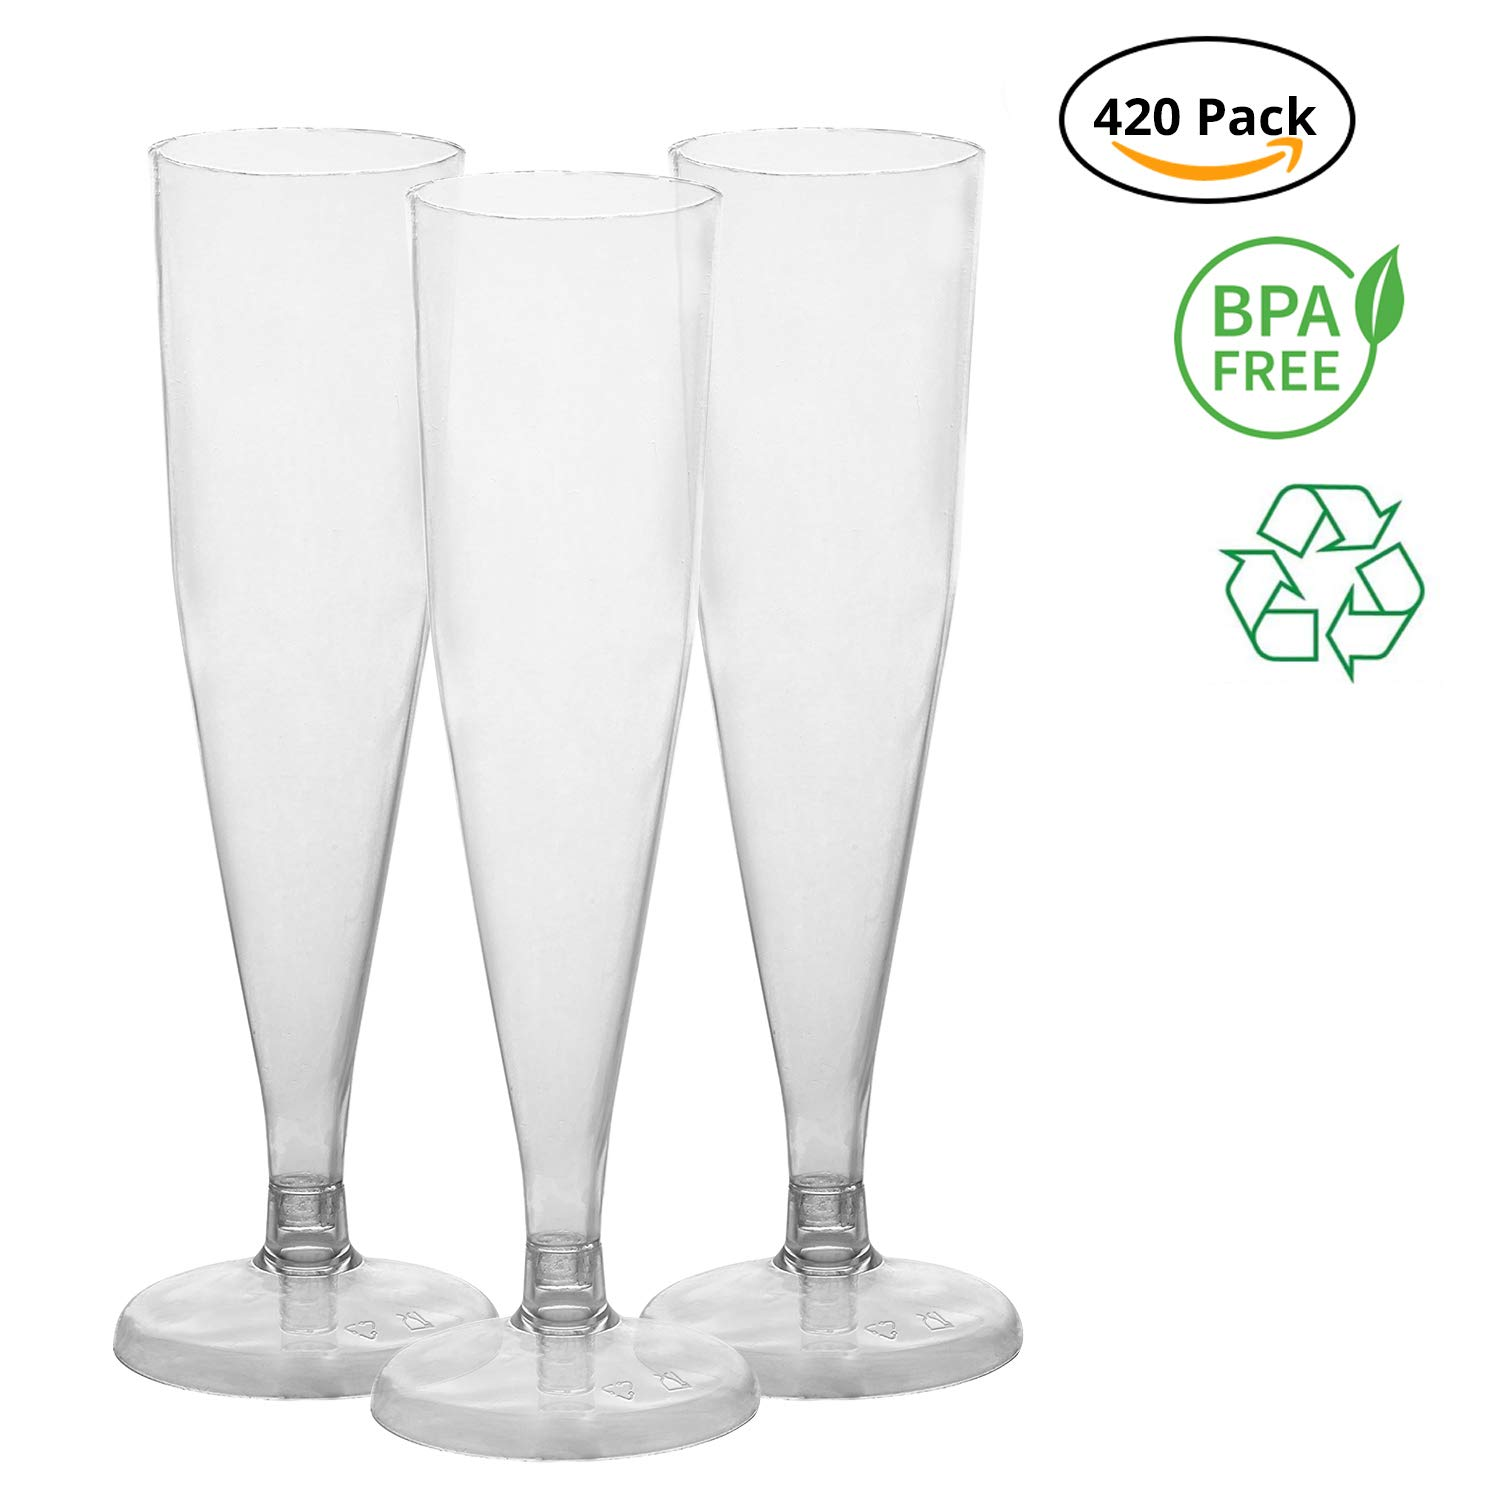 Party Joy [420 Ct] Plastic 6-oz Champagne Flutes (Pack of 420) | BPA Free-Flutes| Heavy Duty Premium Plastic Champagne Flutes for Wedding, Parties & More by TTG